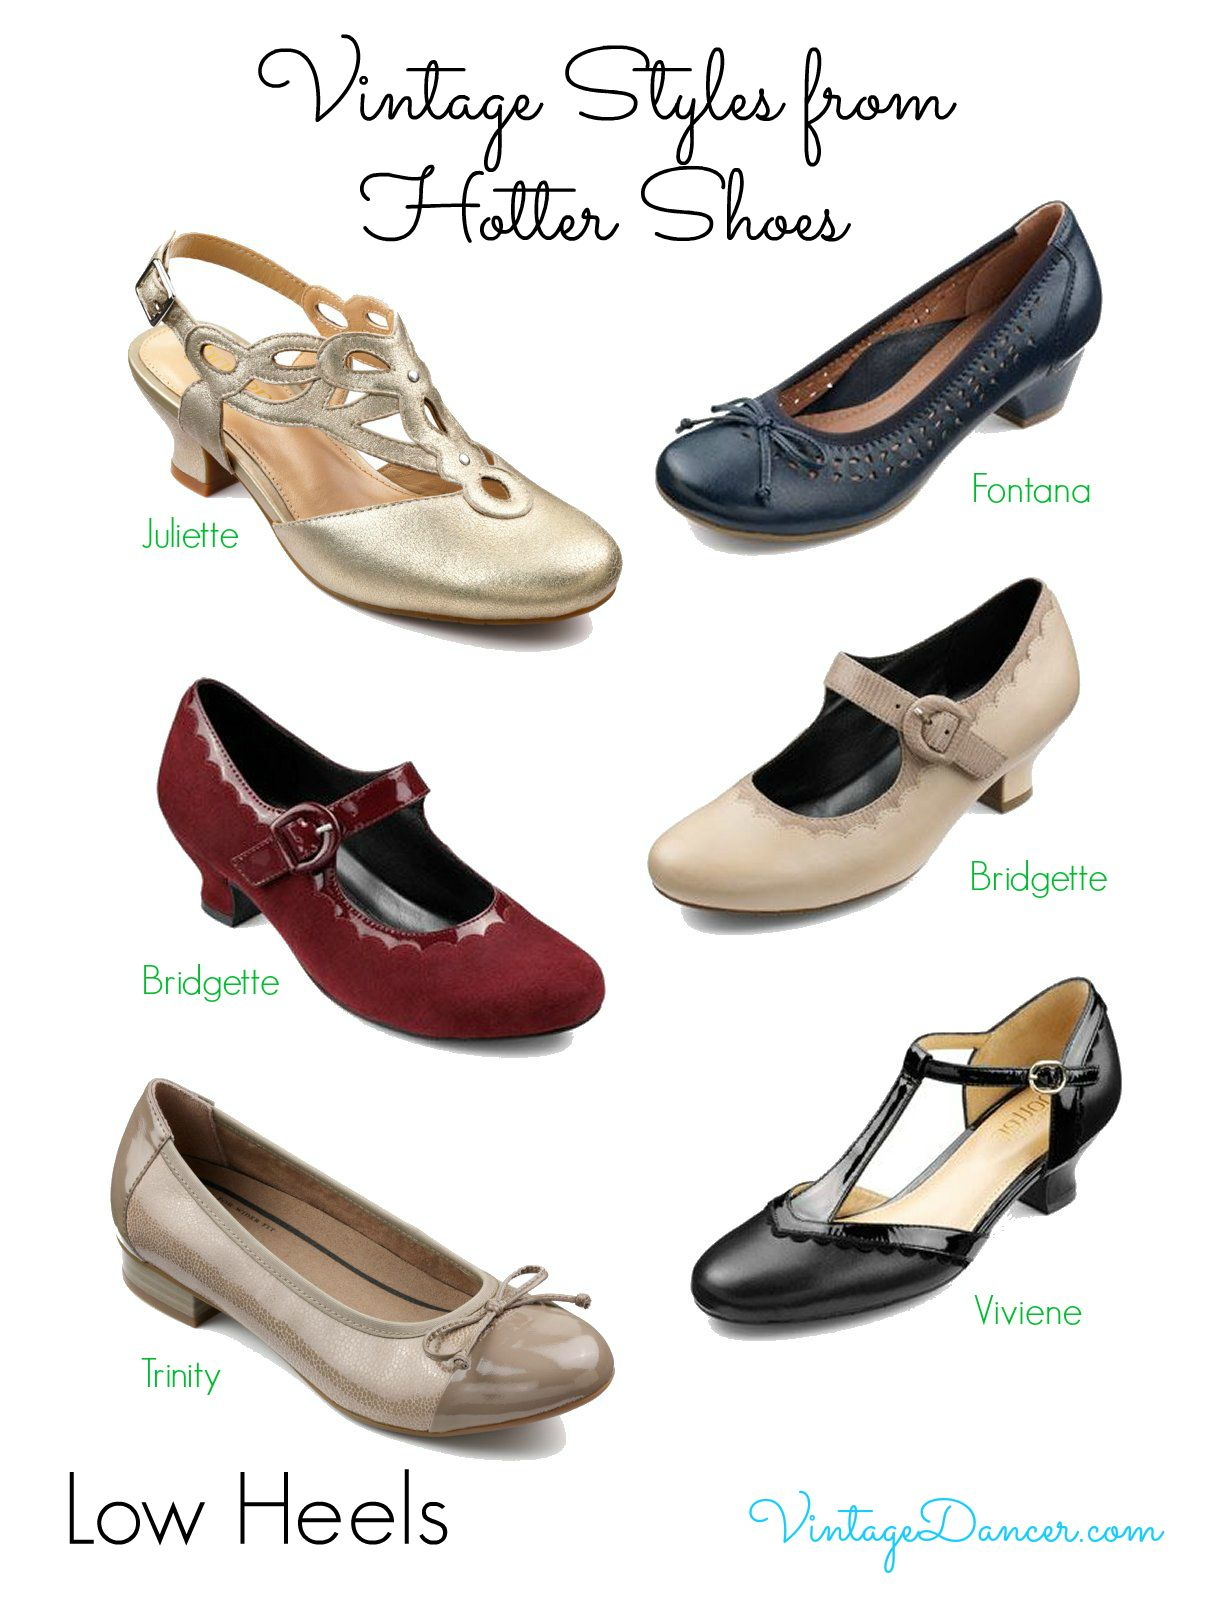 e3bbca9583a86 Vintage style Hotter Shoes. These styles could easily suit eras from the  1920s up to the 1960s. Shop them at VintageDancer.com